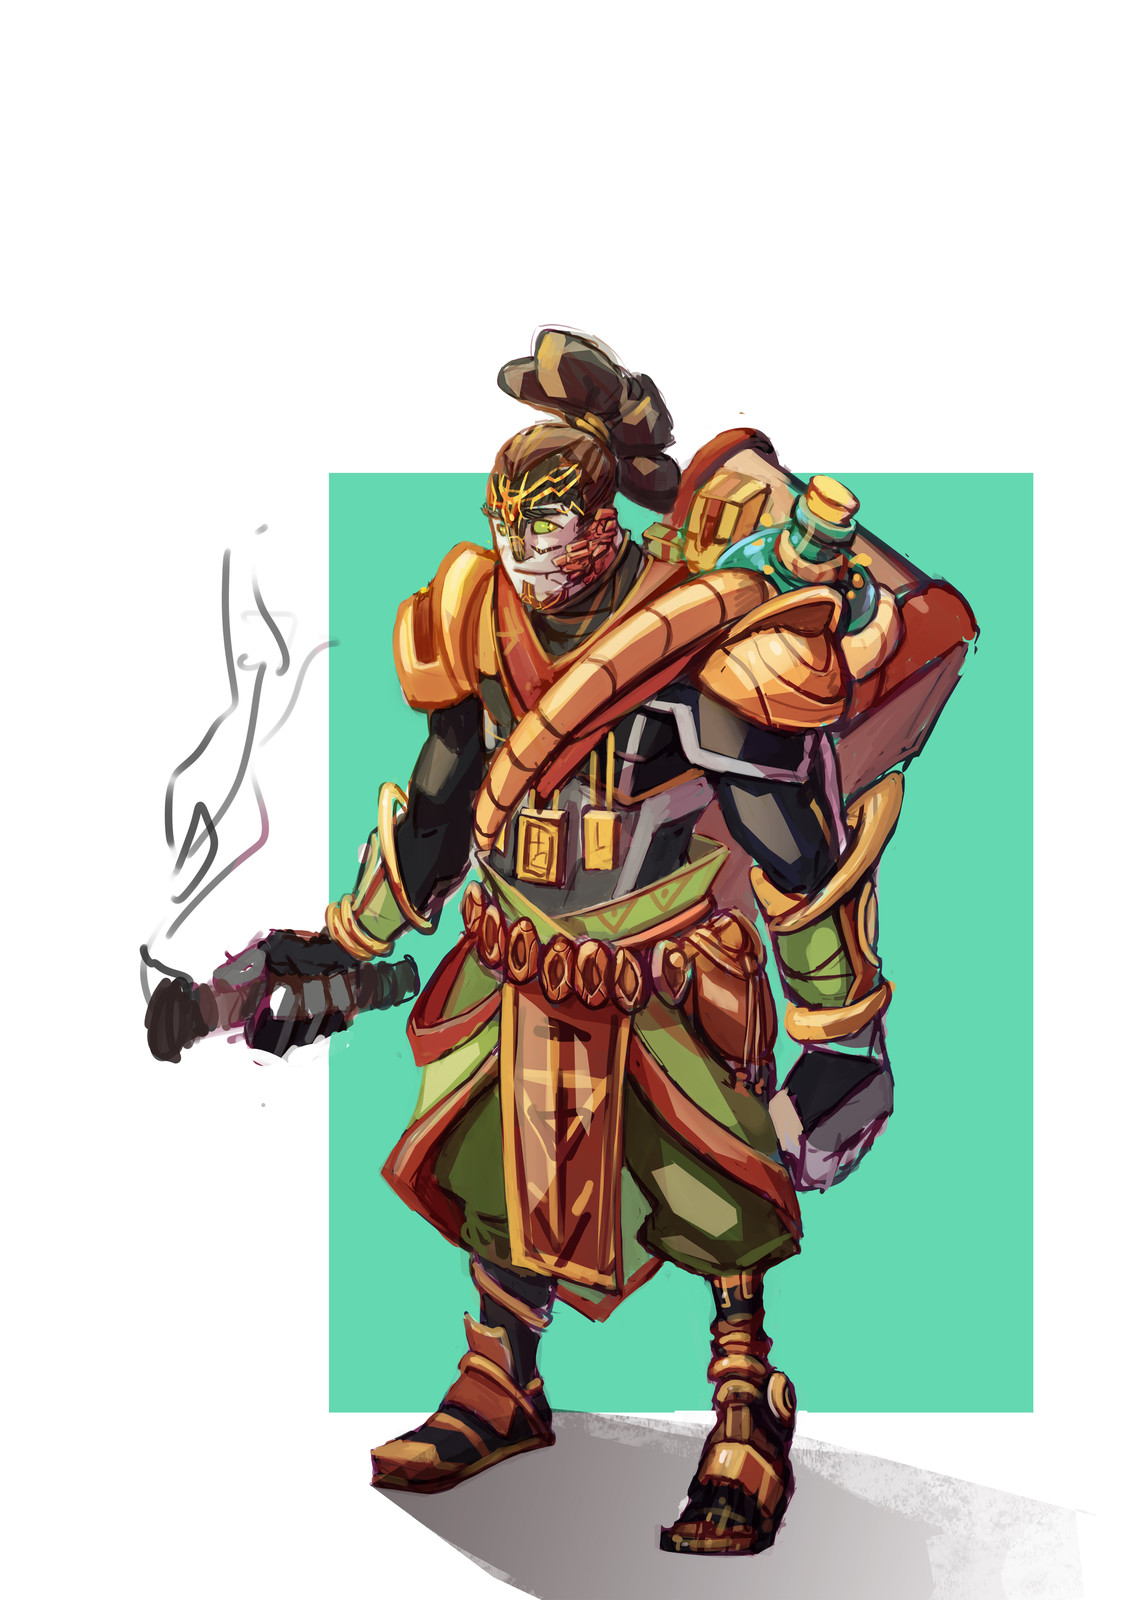 Native ranger, the colons healed his wounded leg, and now he fells the need to help them and to be the bridge between natives and colons